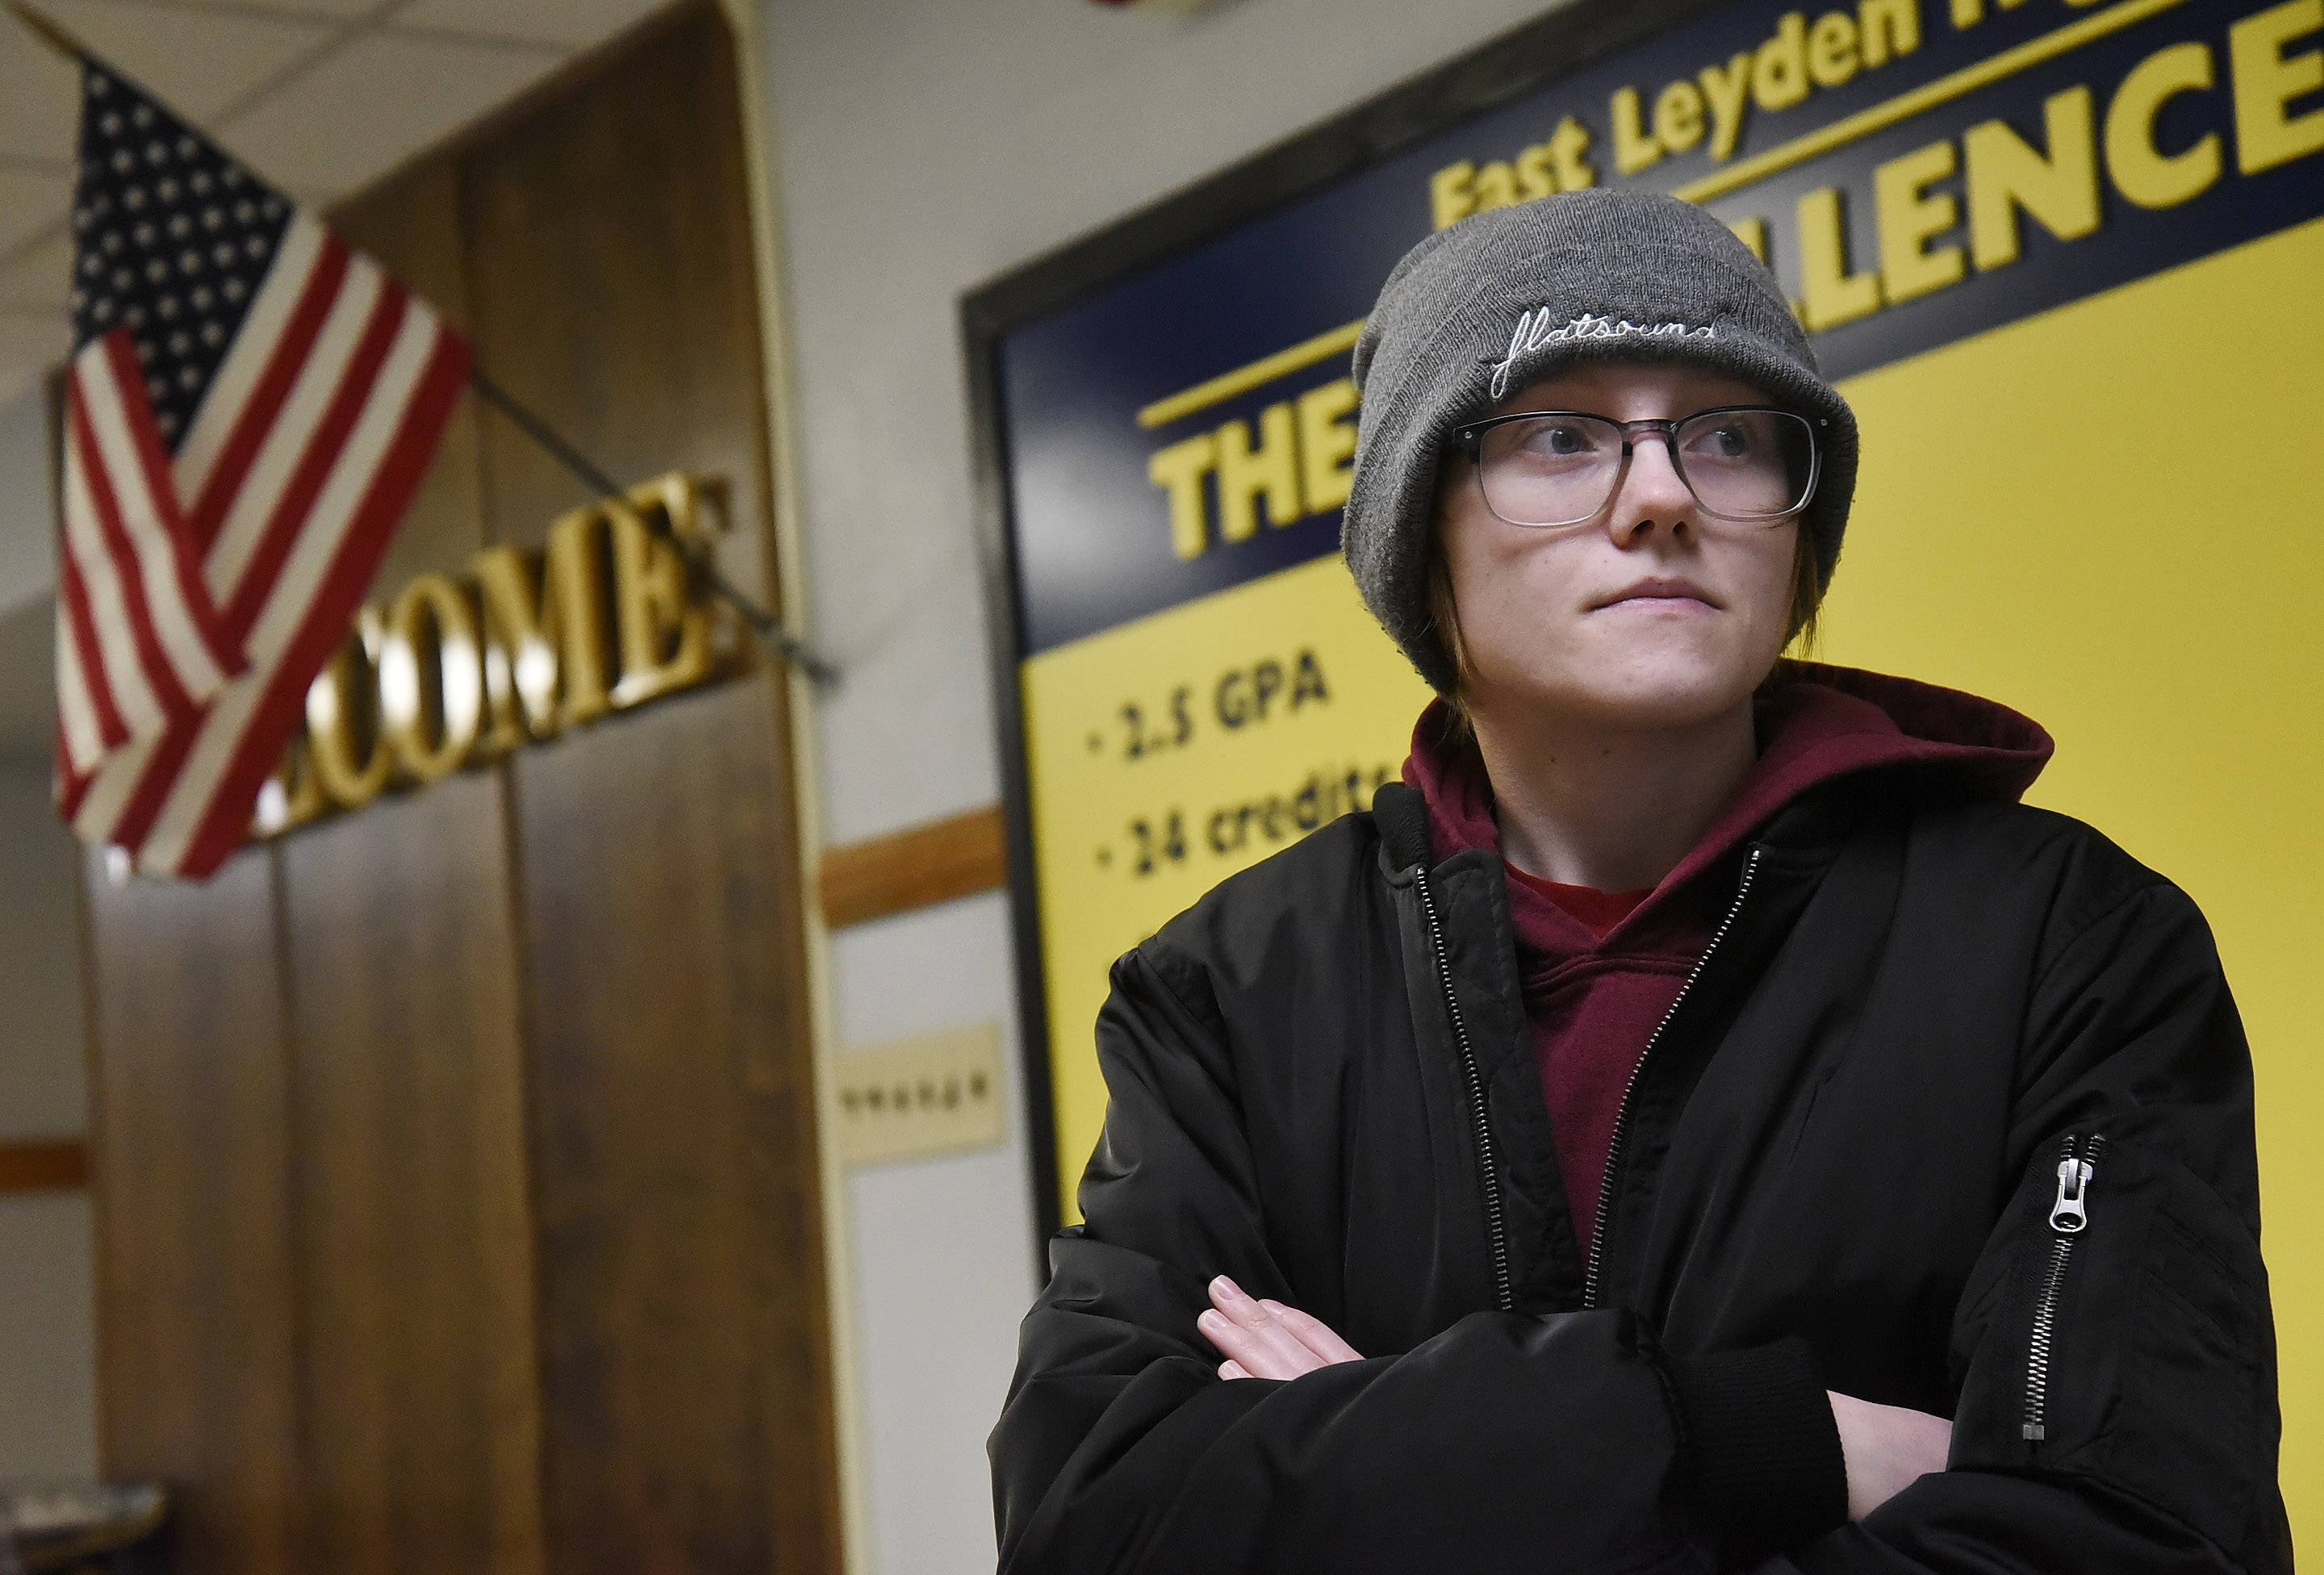 Coming out as transgender did not go well in middle school for Charlie Zielinski, he writes. But he found the emotional support he sought when he tried again during his sophomore year at East Leyden High School in Franklin Park.